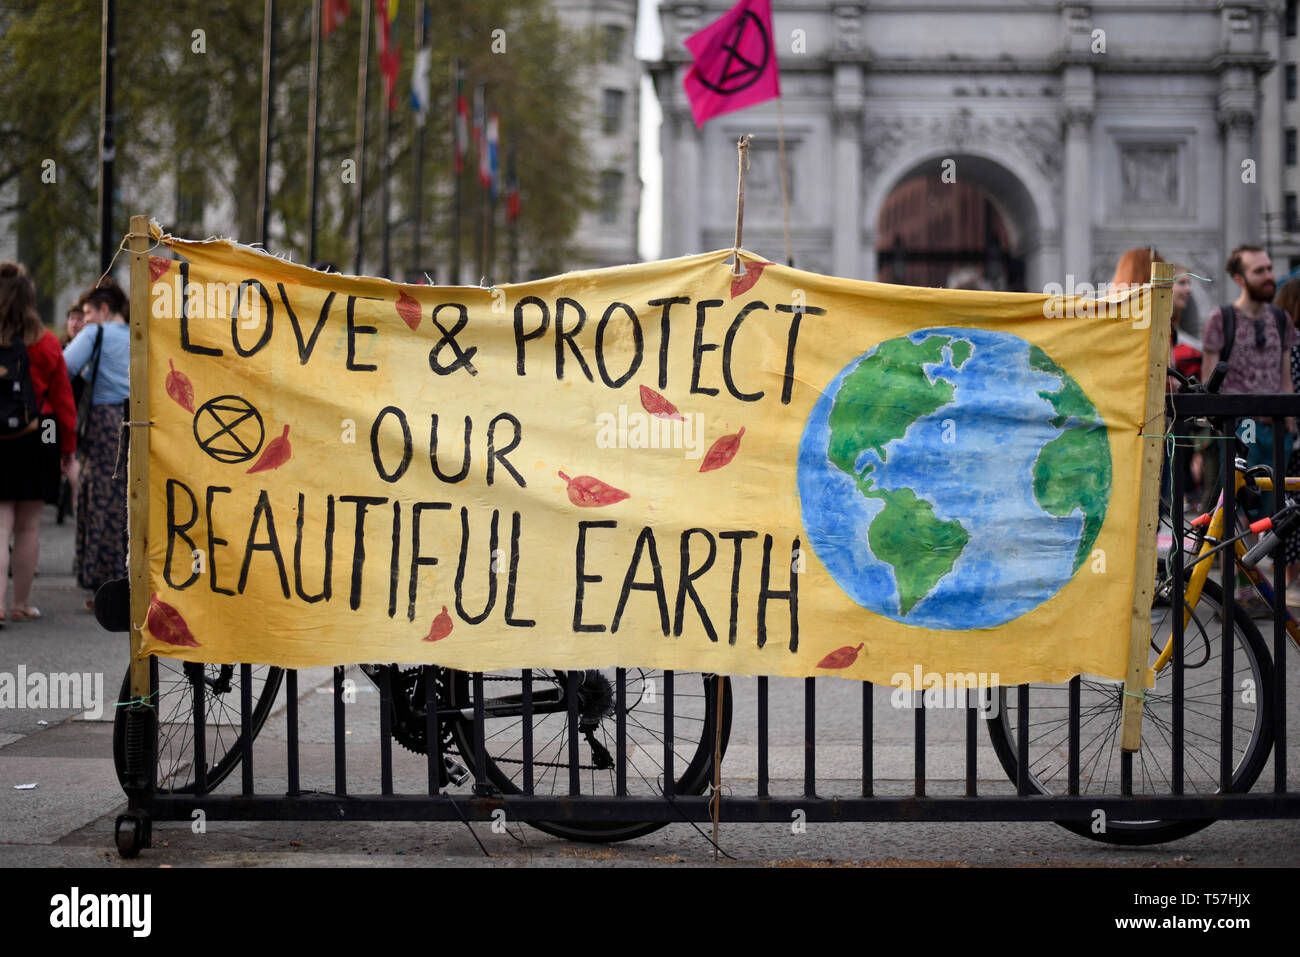 London, UK.  22 April 2019.  An activist's sign at Marble Arch during 'London: International Rebellion', on day eight of a protest organised by Extinction Rebellion.  Protesters are demanding that governments take action against climate change.  After police issued section 14 orders at the other protest sites of Oxford Circus, Waterloo Bridge and Parliament Square resulting in over 900 arrests, protesters have convened at the designated site of Marble Arch so that the protest can continue into its second week.  Credit: Stephen Chung / Alamy Live News - Stock Image